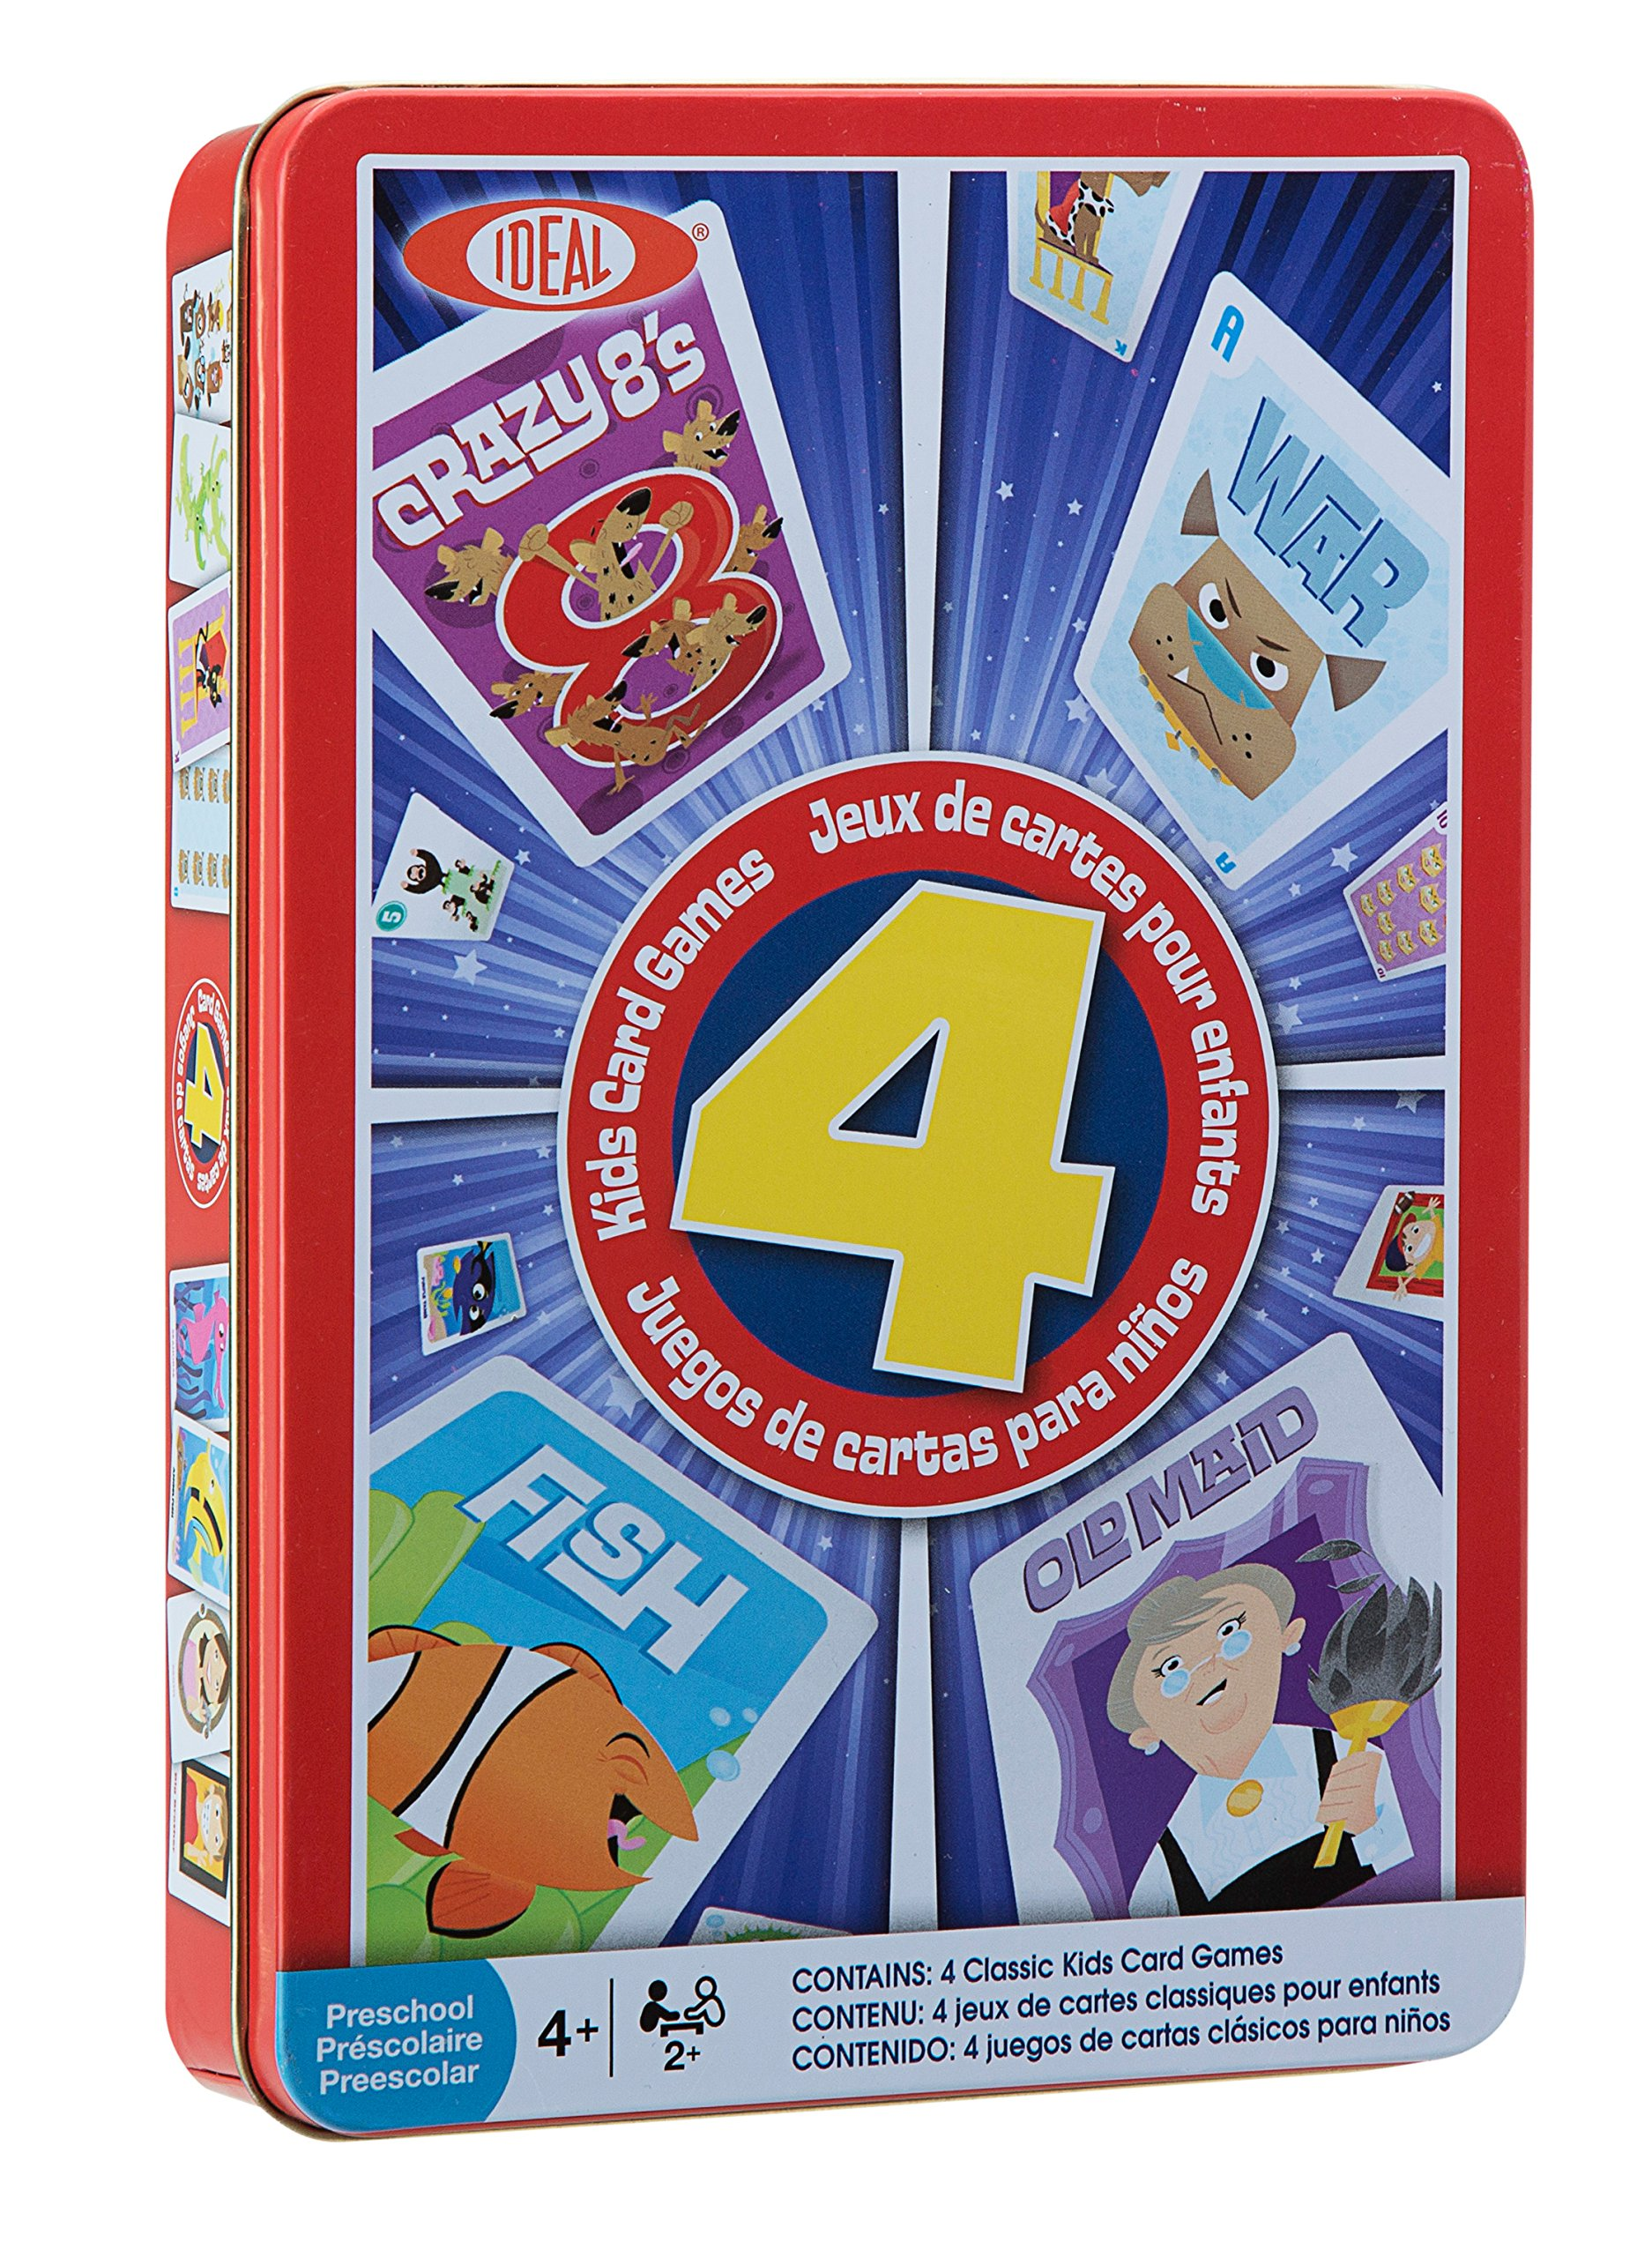 Ideal Children's 4 Card Games in Tin